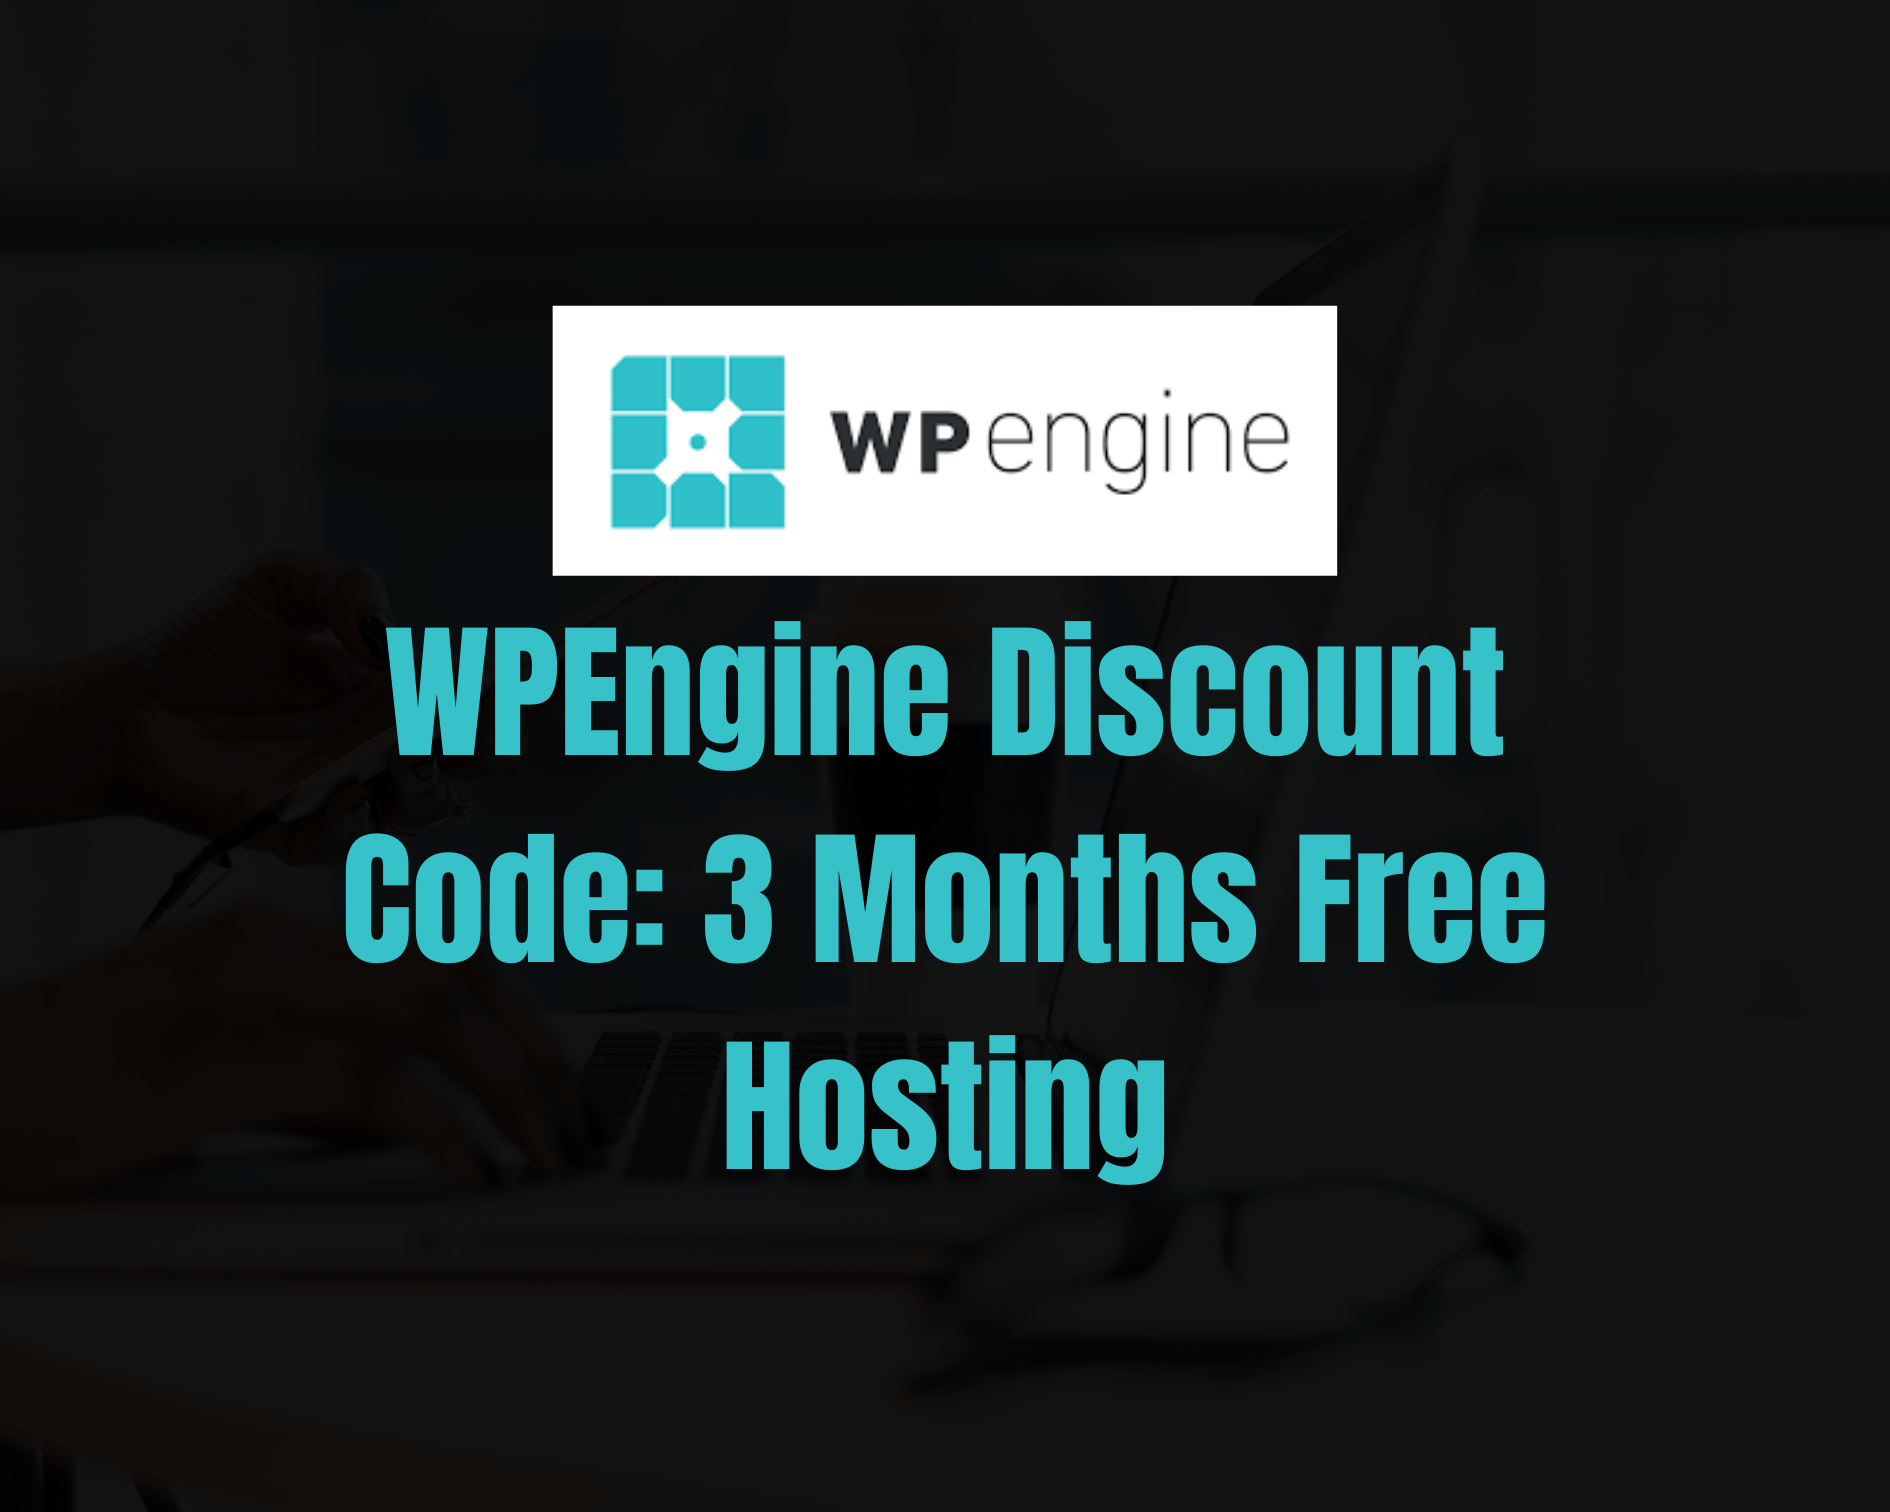 WPEngine Coupon Code 2021: Get 3 Months Free Hosting